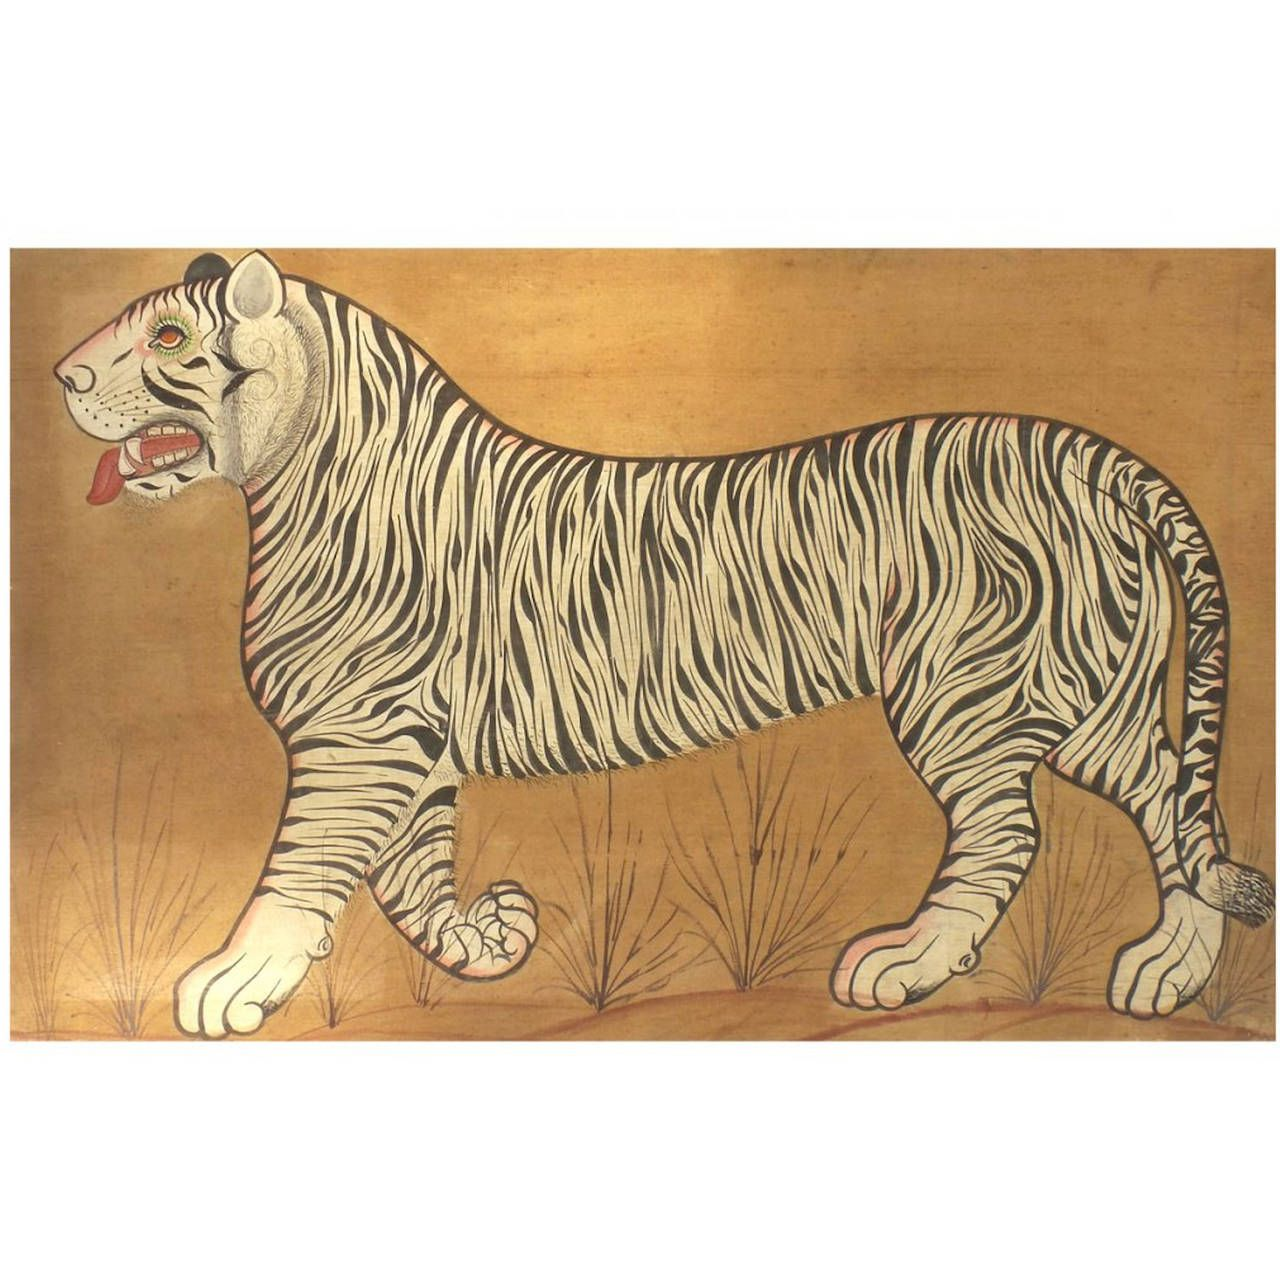 Indian Tiger Painting On Cloth In 2019